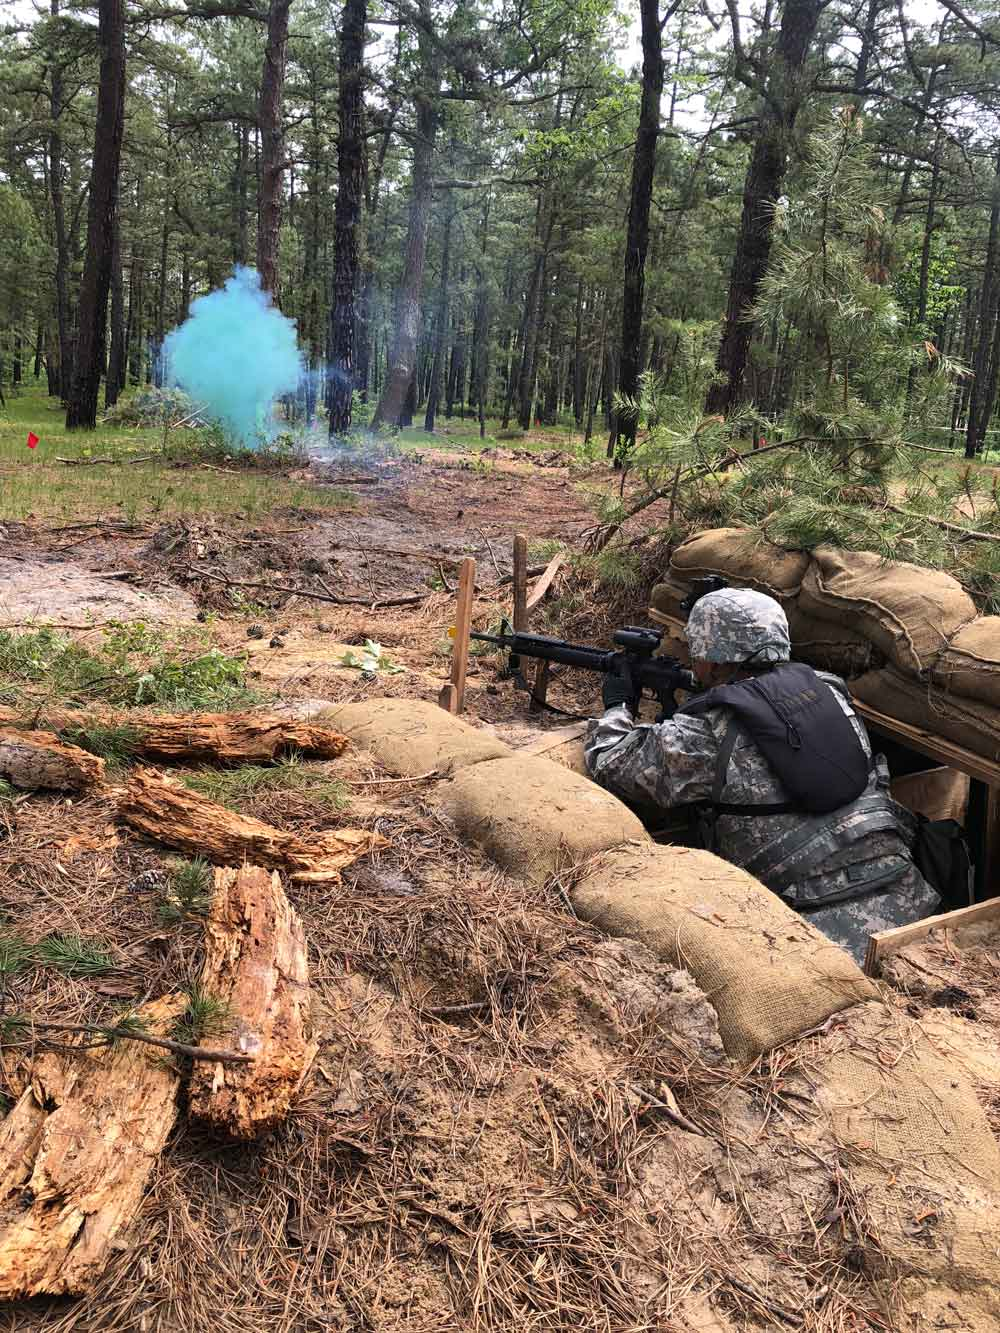 A New Jersey Army National Guard Soldier with the 350th Financial Management Support Detachment provides suppressive fire during a live fire drill held as part of the unit's mobilization exercise conducted May-June 2018 at Joint Base McGuire-Dix-Lakehurst.